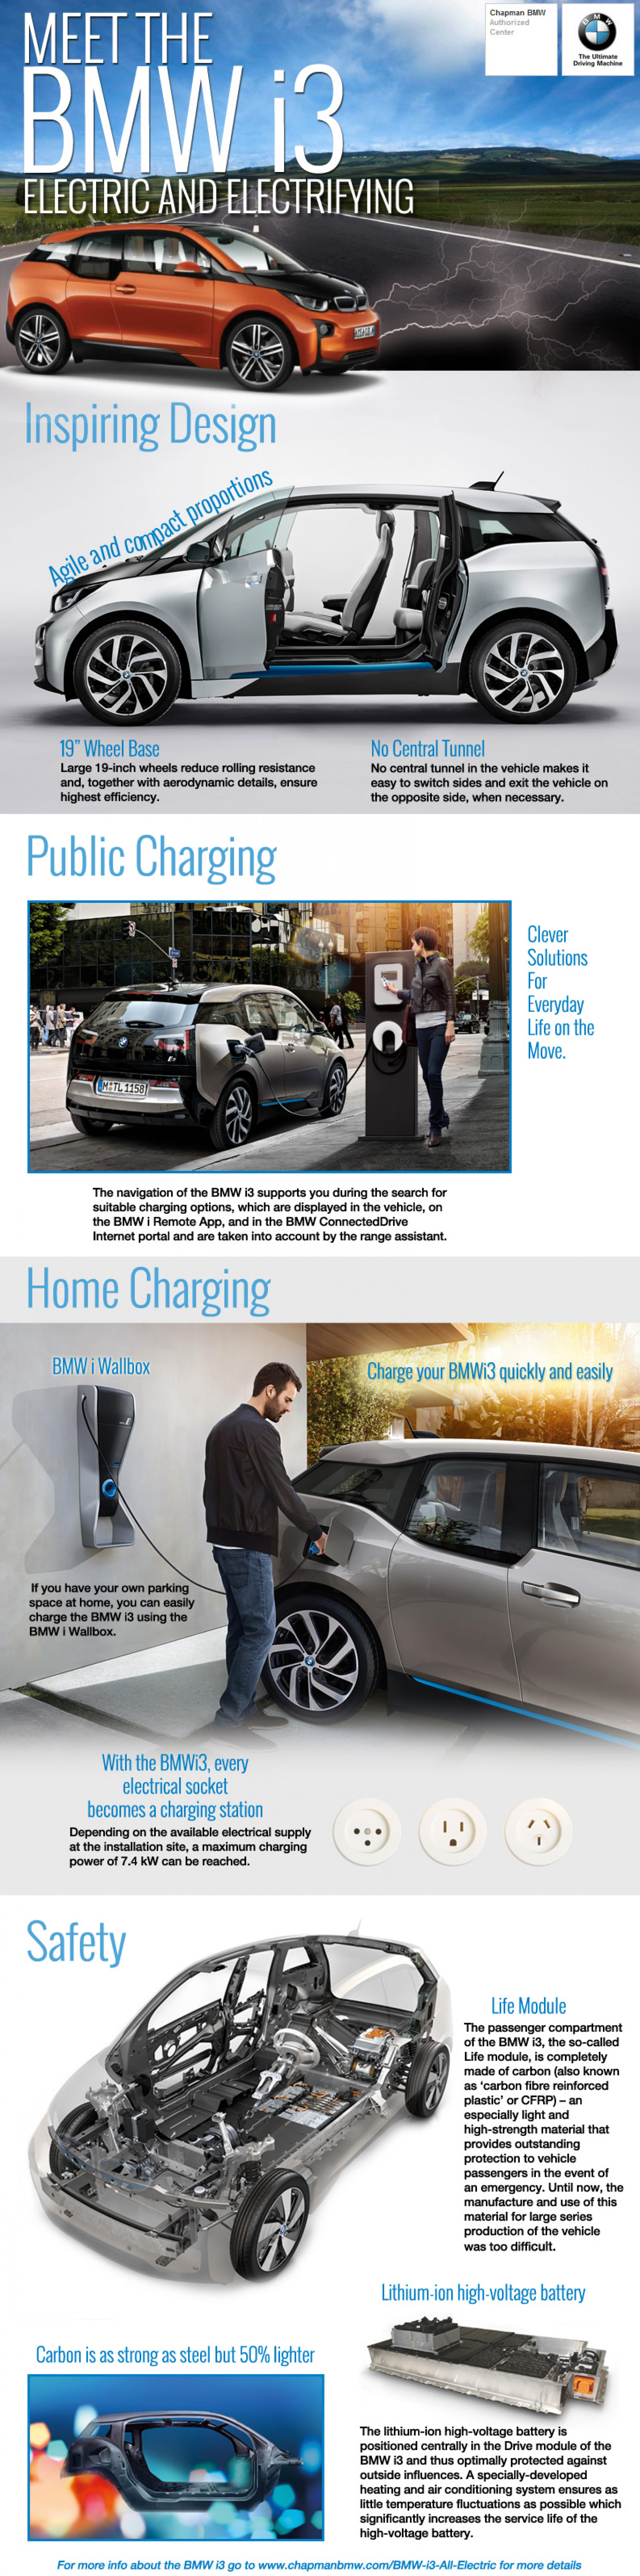 BMW i3 Electric Vehicle Infographic